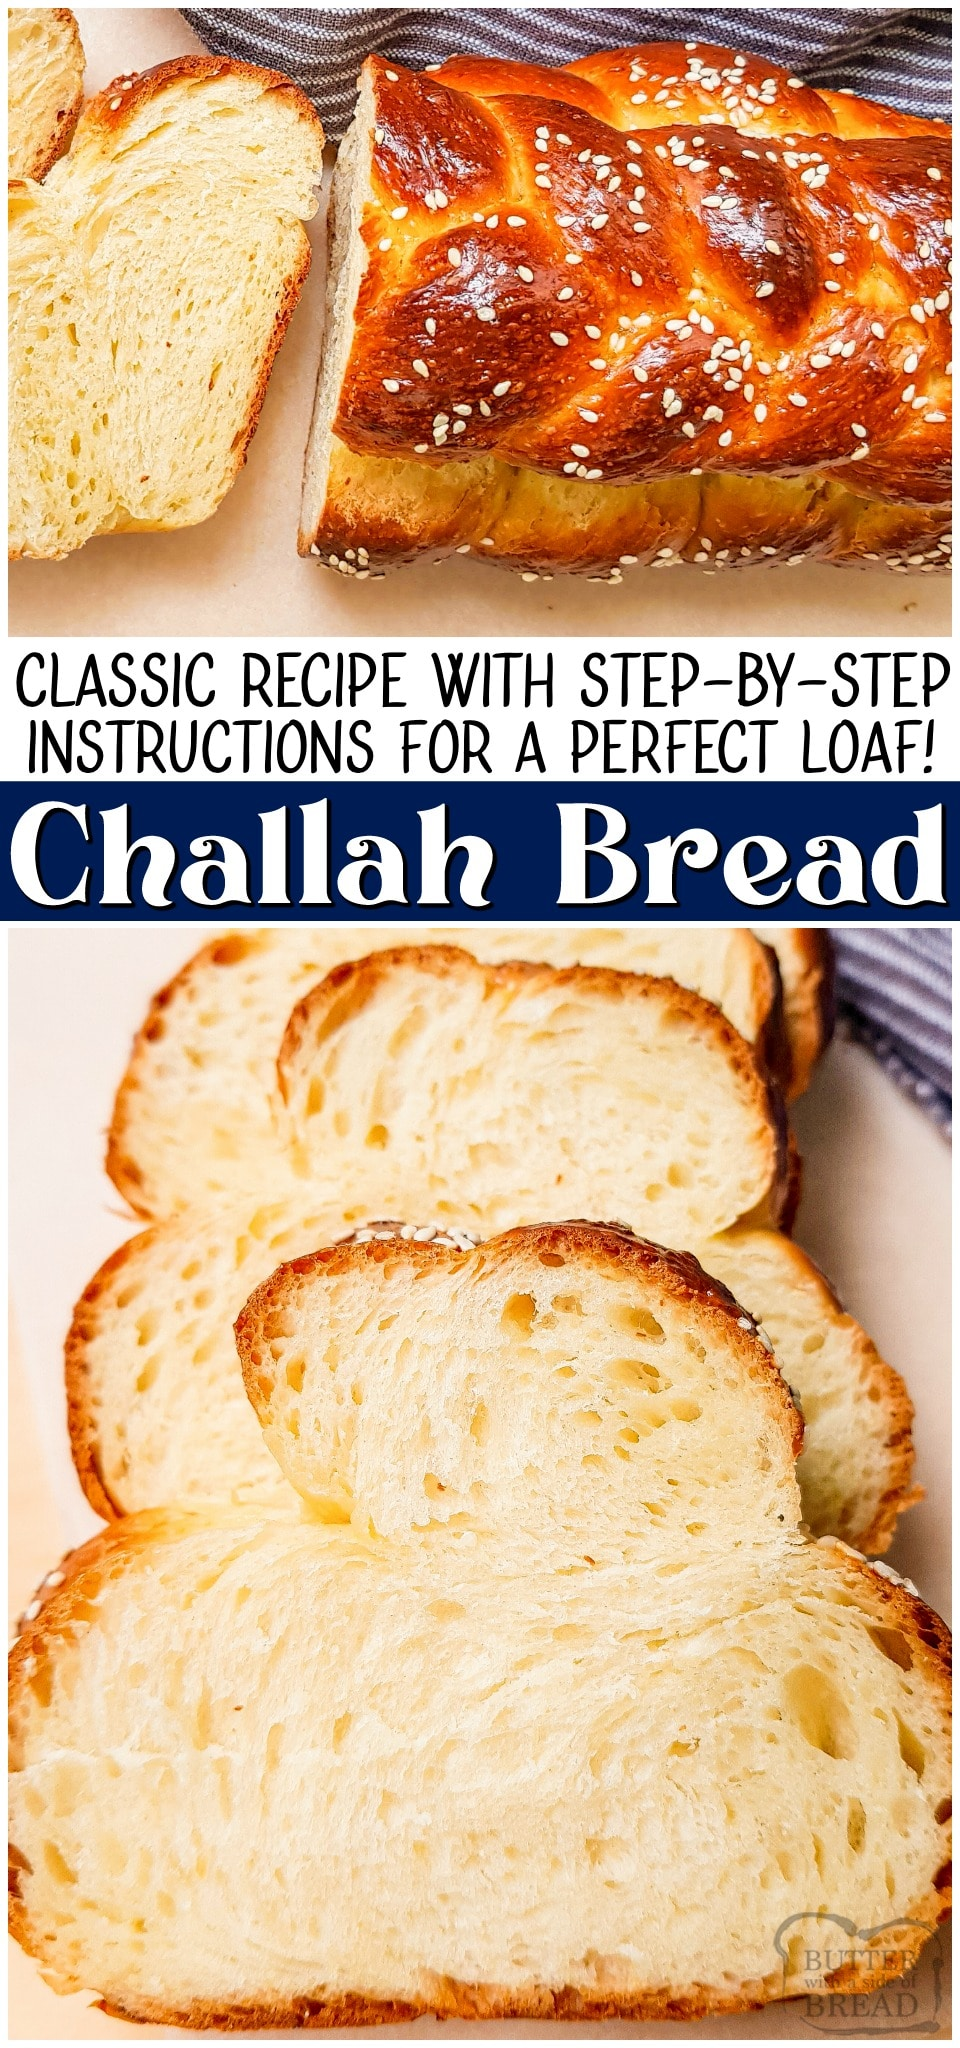 Classic Challah Bread recipe made with flour, milk & eggs. Easy Challah with step-by-step instructions for perfect bread with a lovely soft, feathery texture. #challah #bread #eggs #baking #homemade #easyrecipe from BUTTER WITH A SIDE OF BREAD